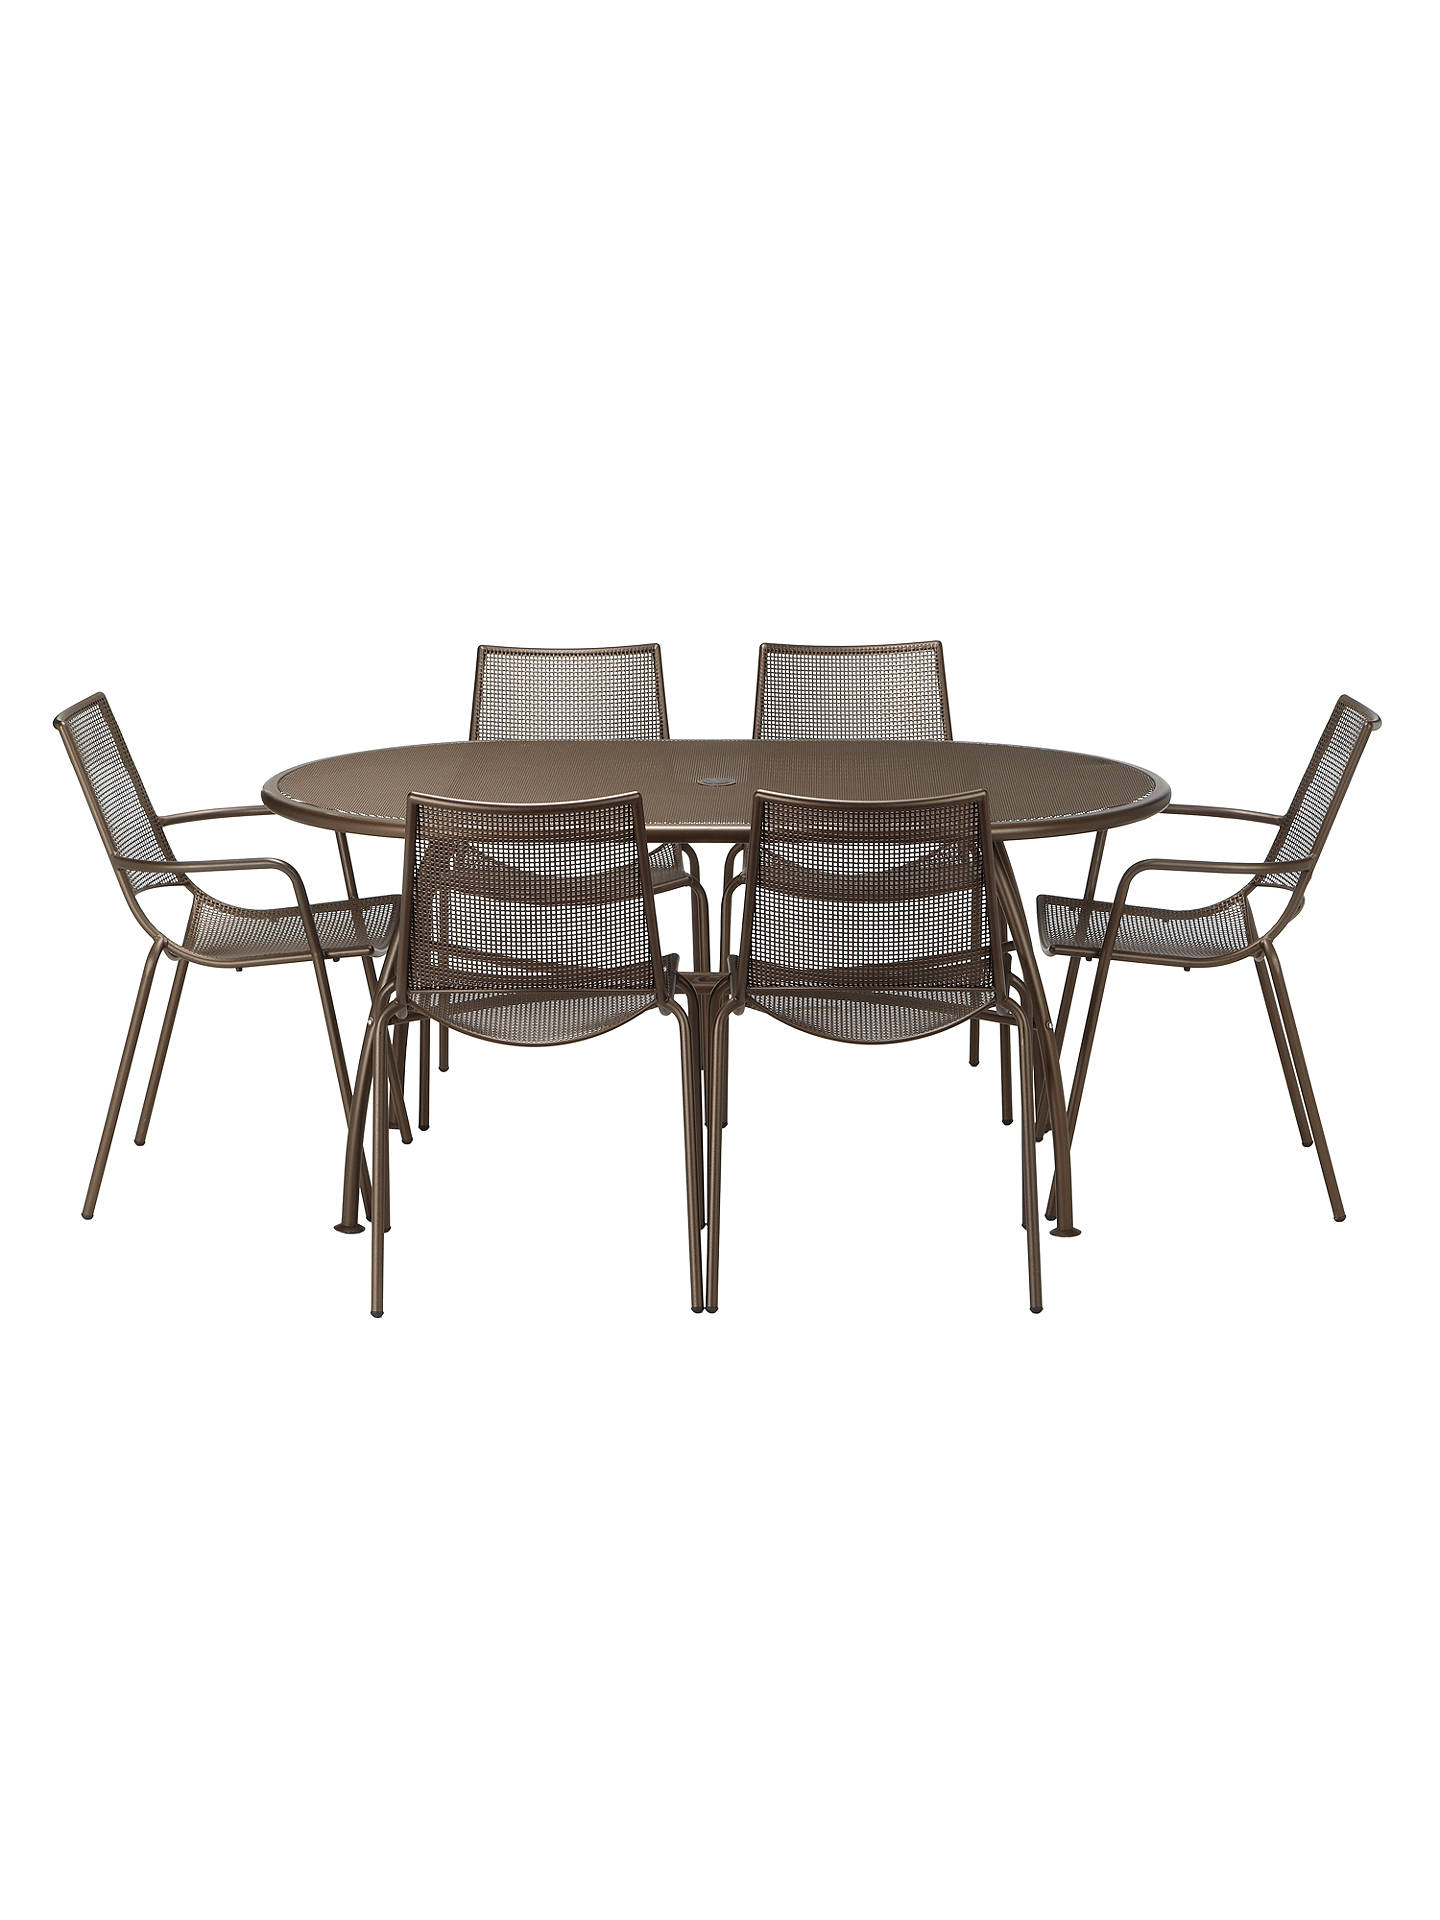 Buy john lewis partners ala mesh 6 seater garden table and chairs dining set